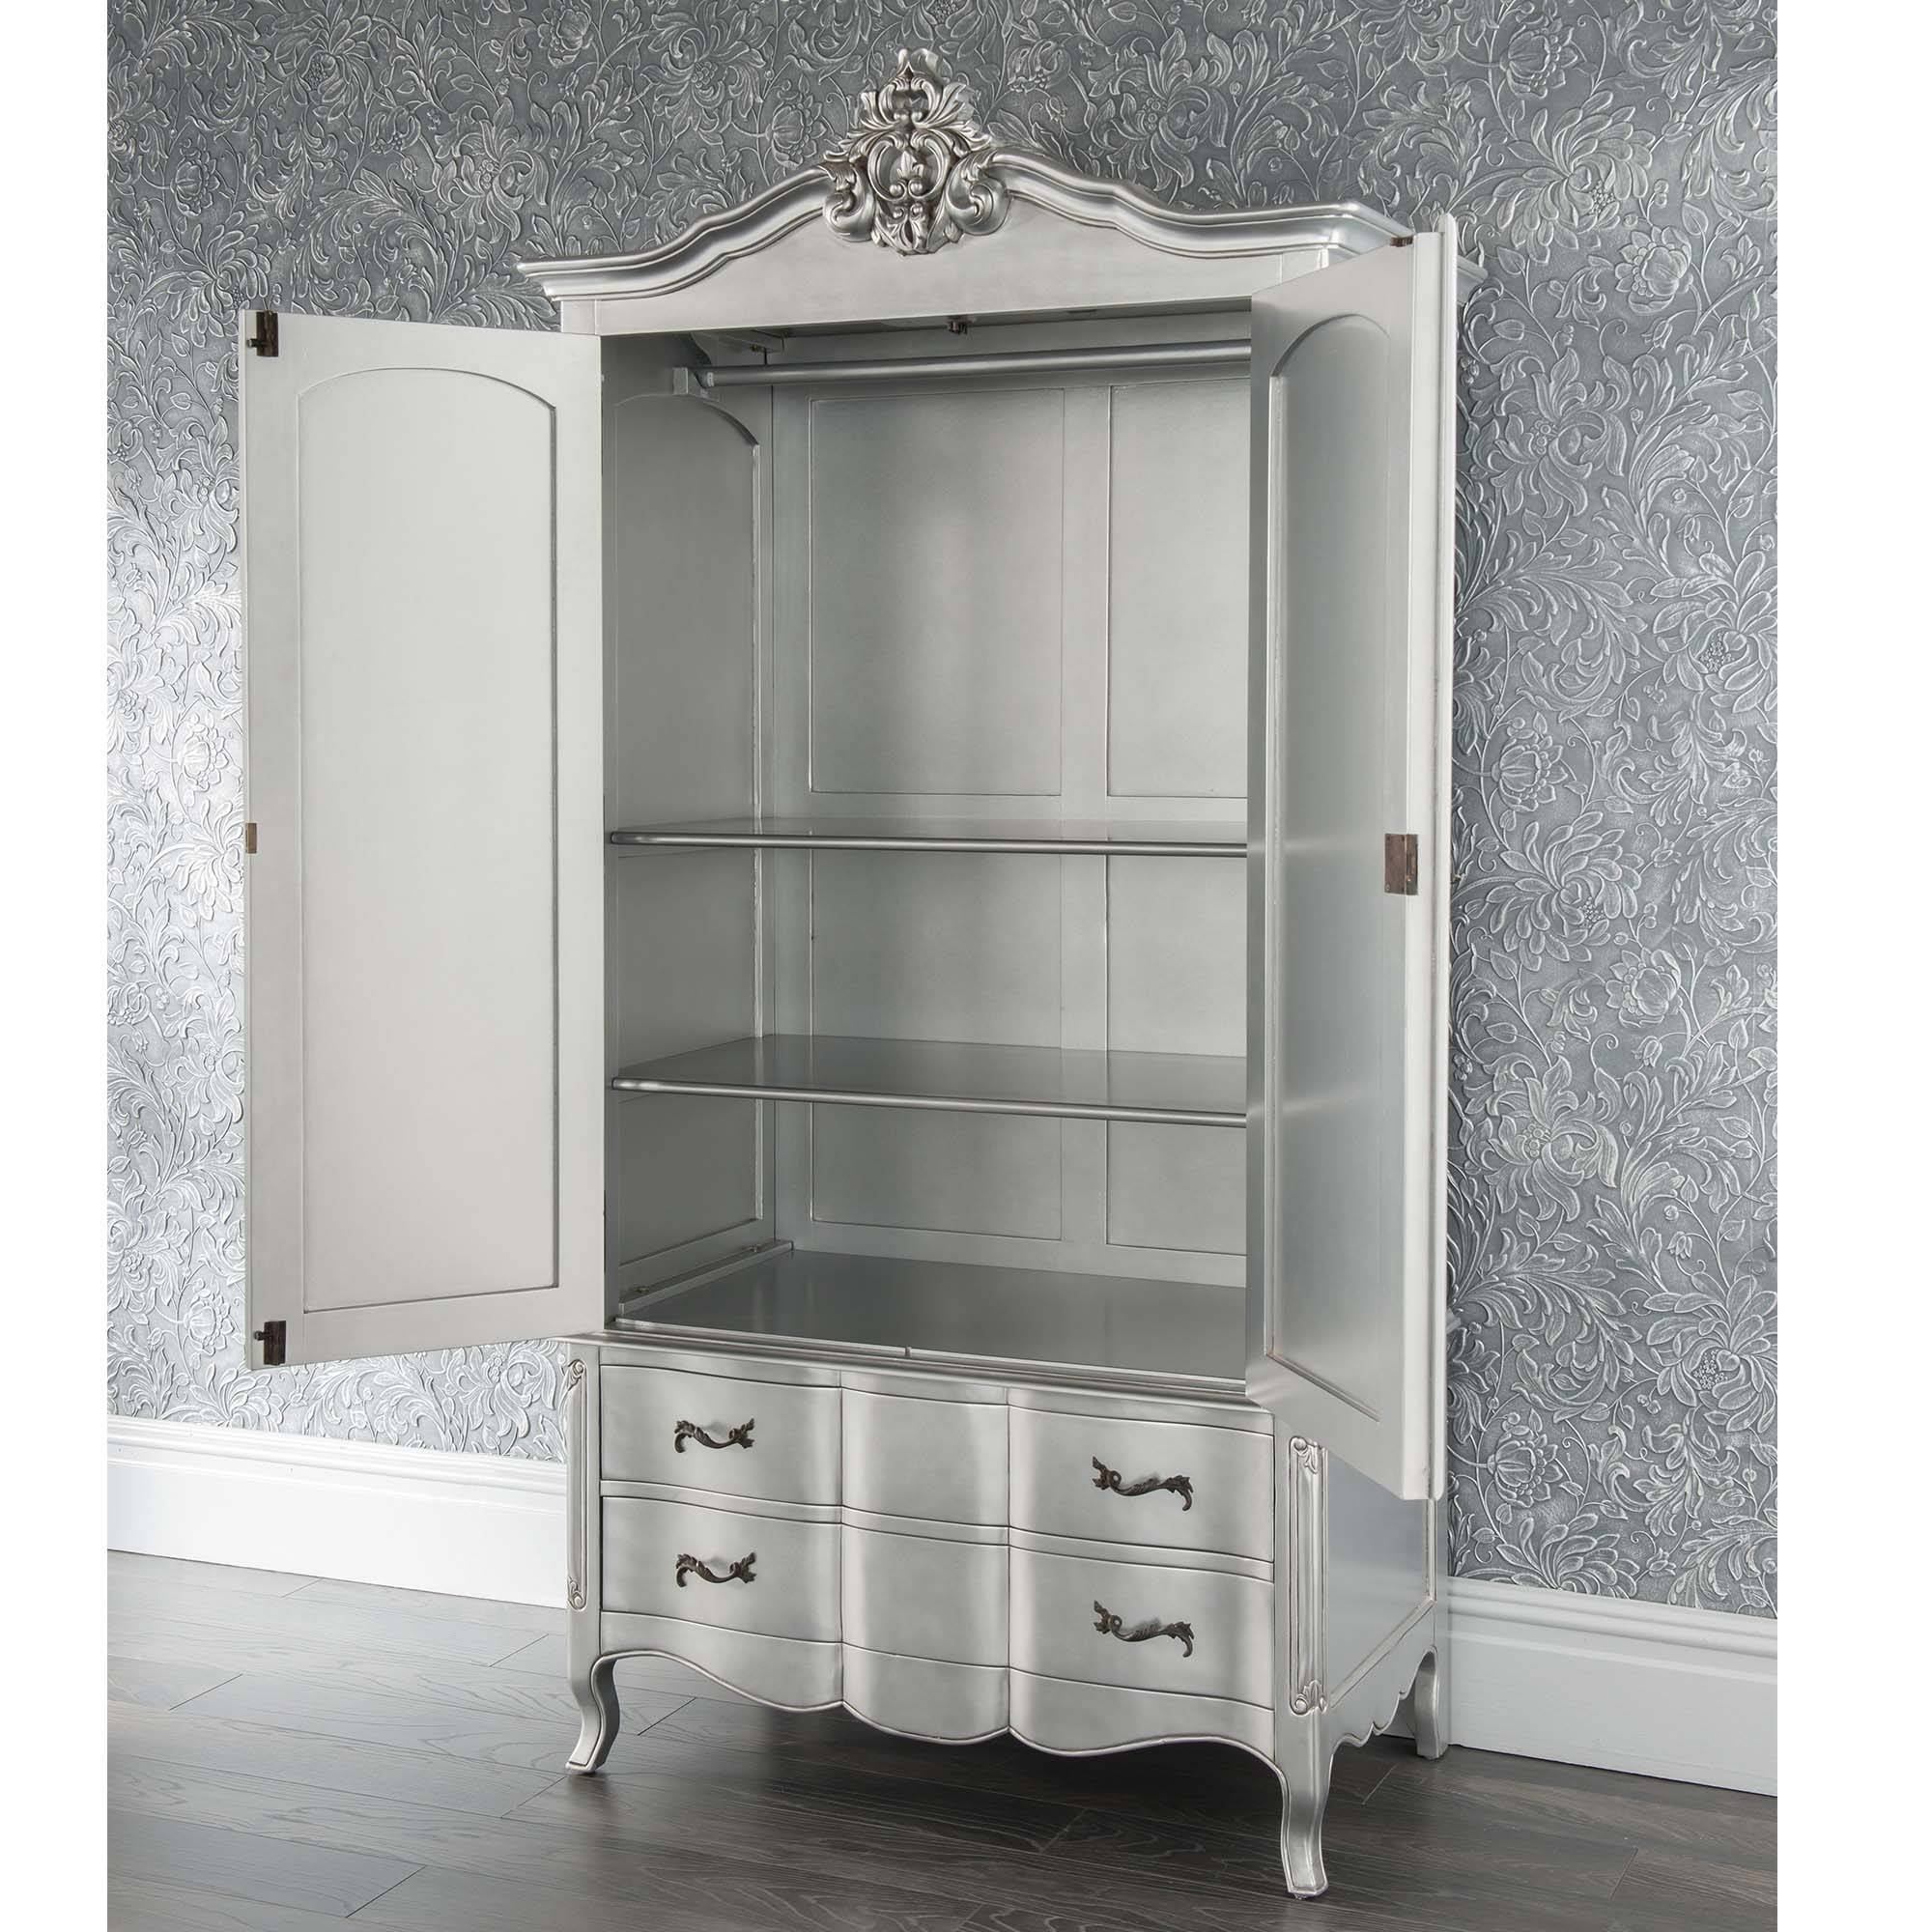 Estelle Antique French Style Wardrobe | Shabby Chic within Black French Style Wardrobes (Image 5 of 15)